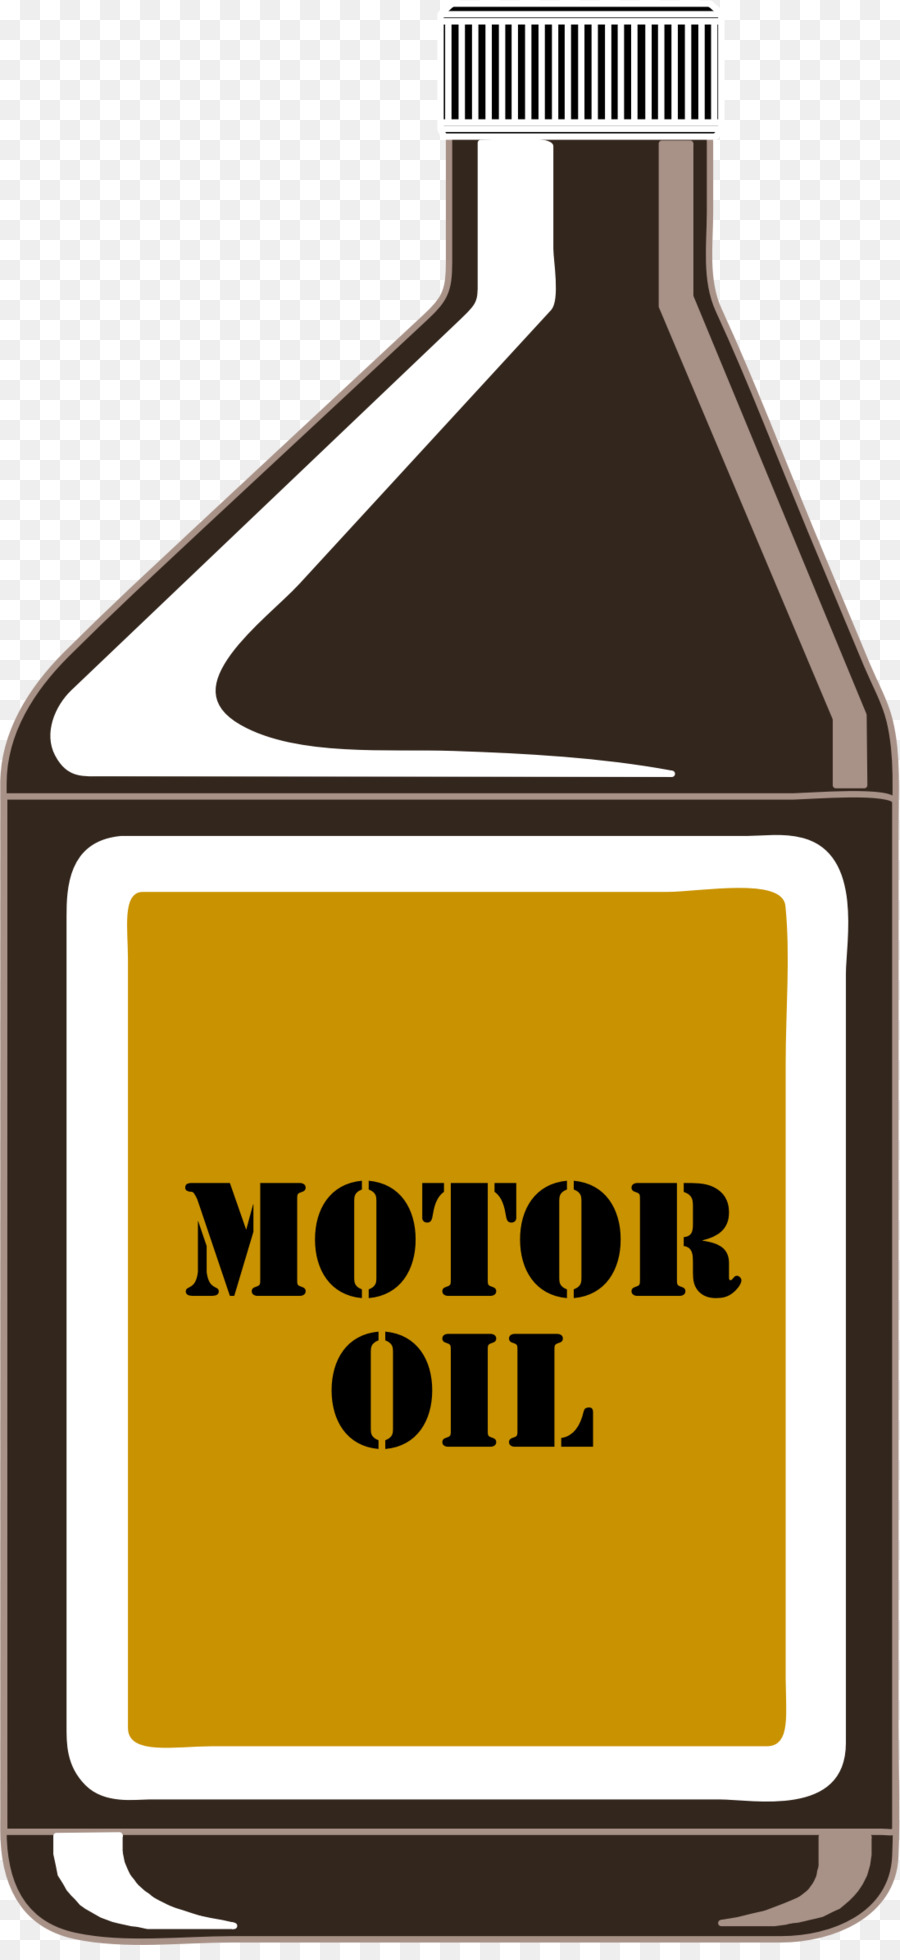 900x1960 Car Motor Oil Computer Icons Clip Art